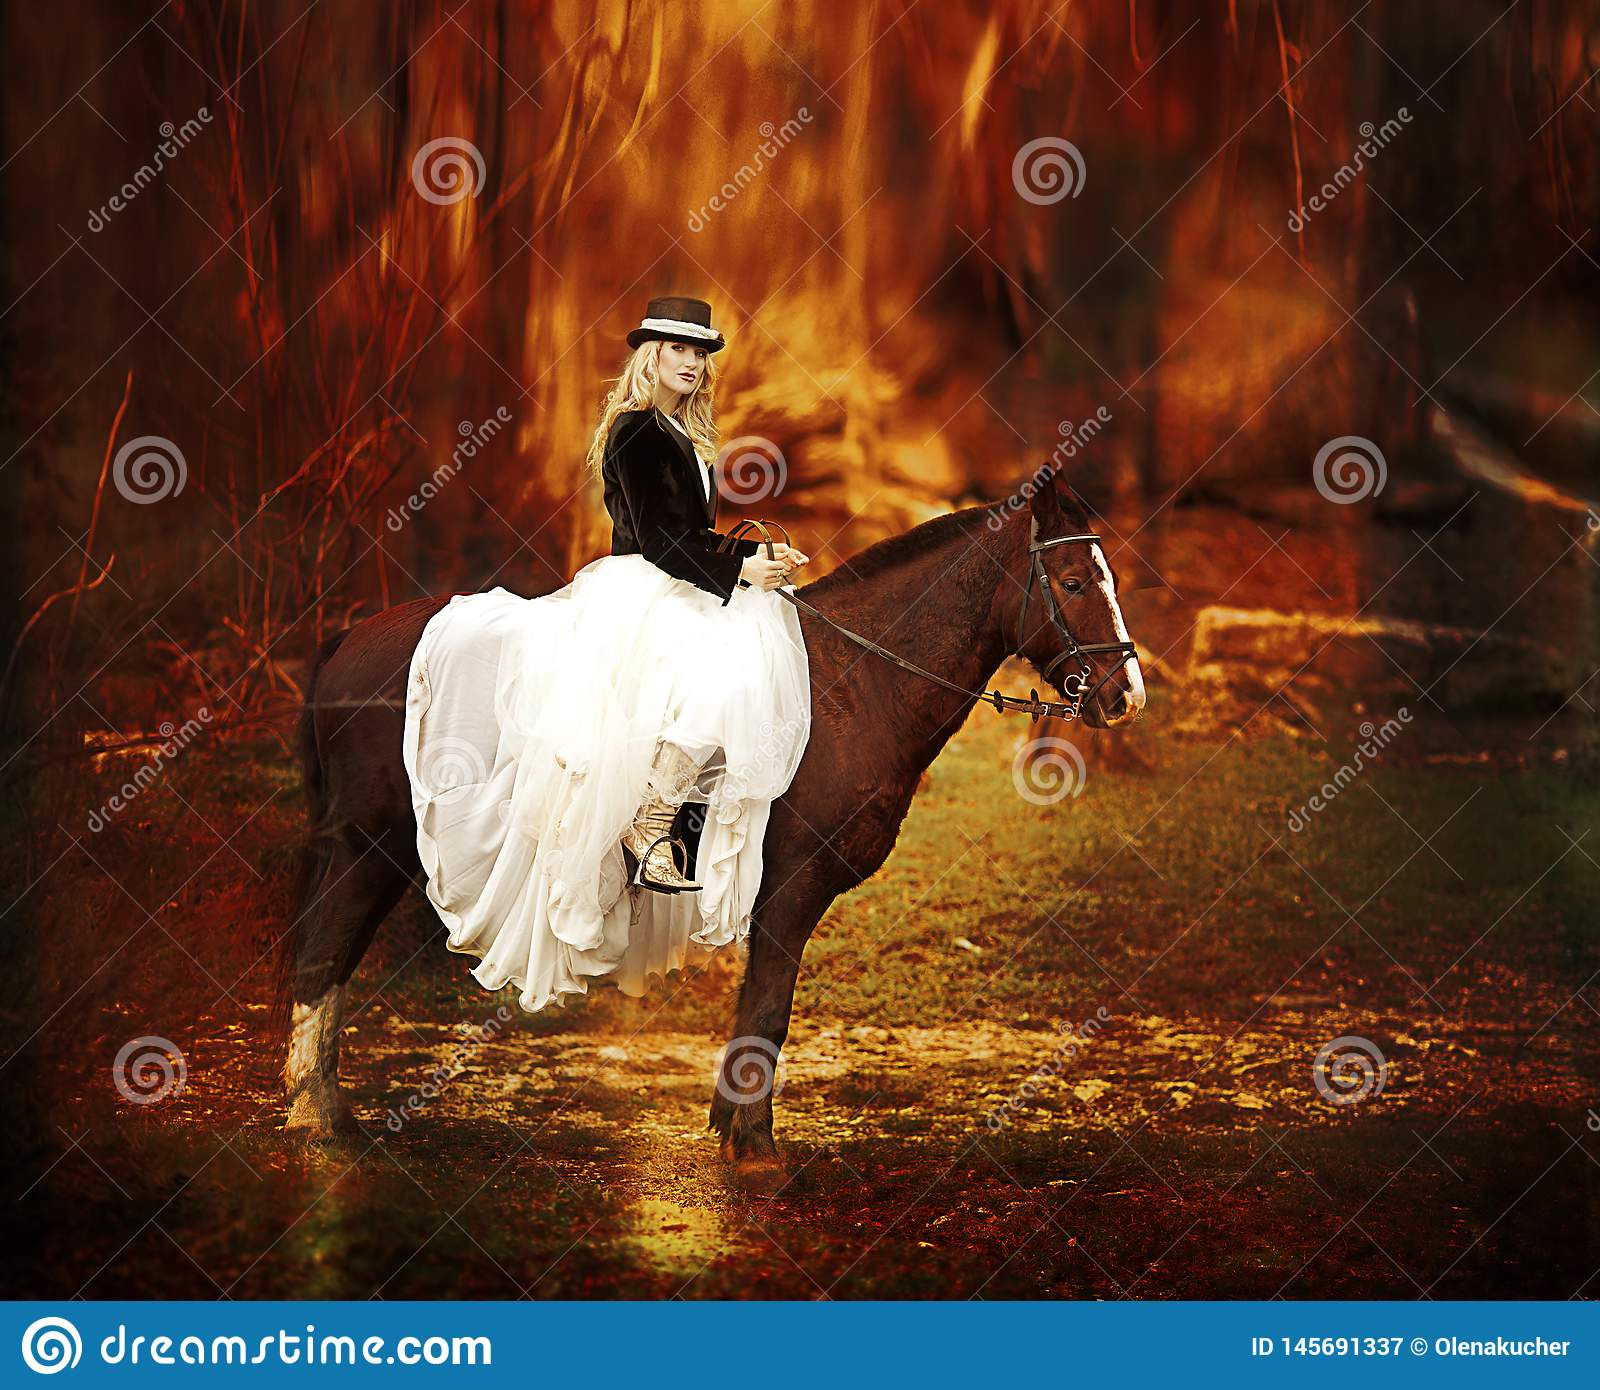 Pretty Woman With Black Horse In Autumnal Nature Fashion Photoshoot Stock Image Image Of Cute Lifestyle 145691337